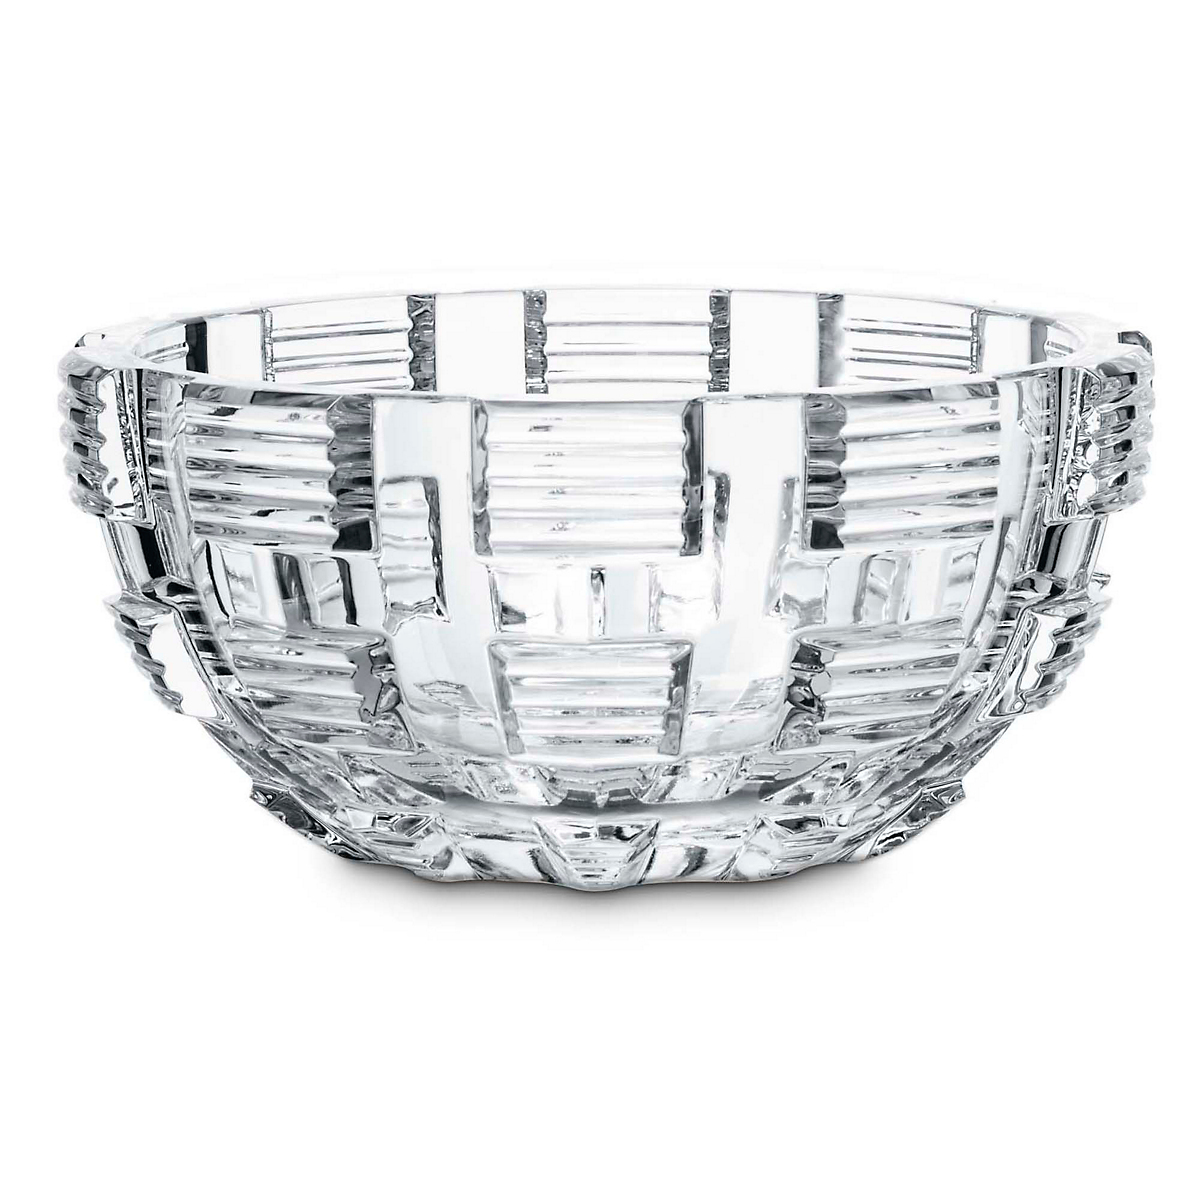 Baccarat Check Bowl